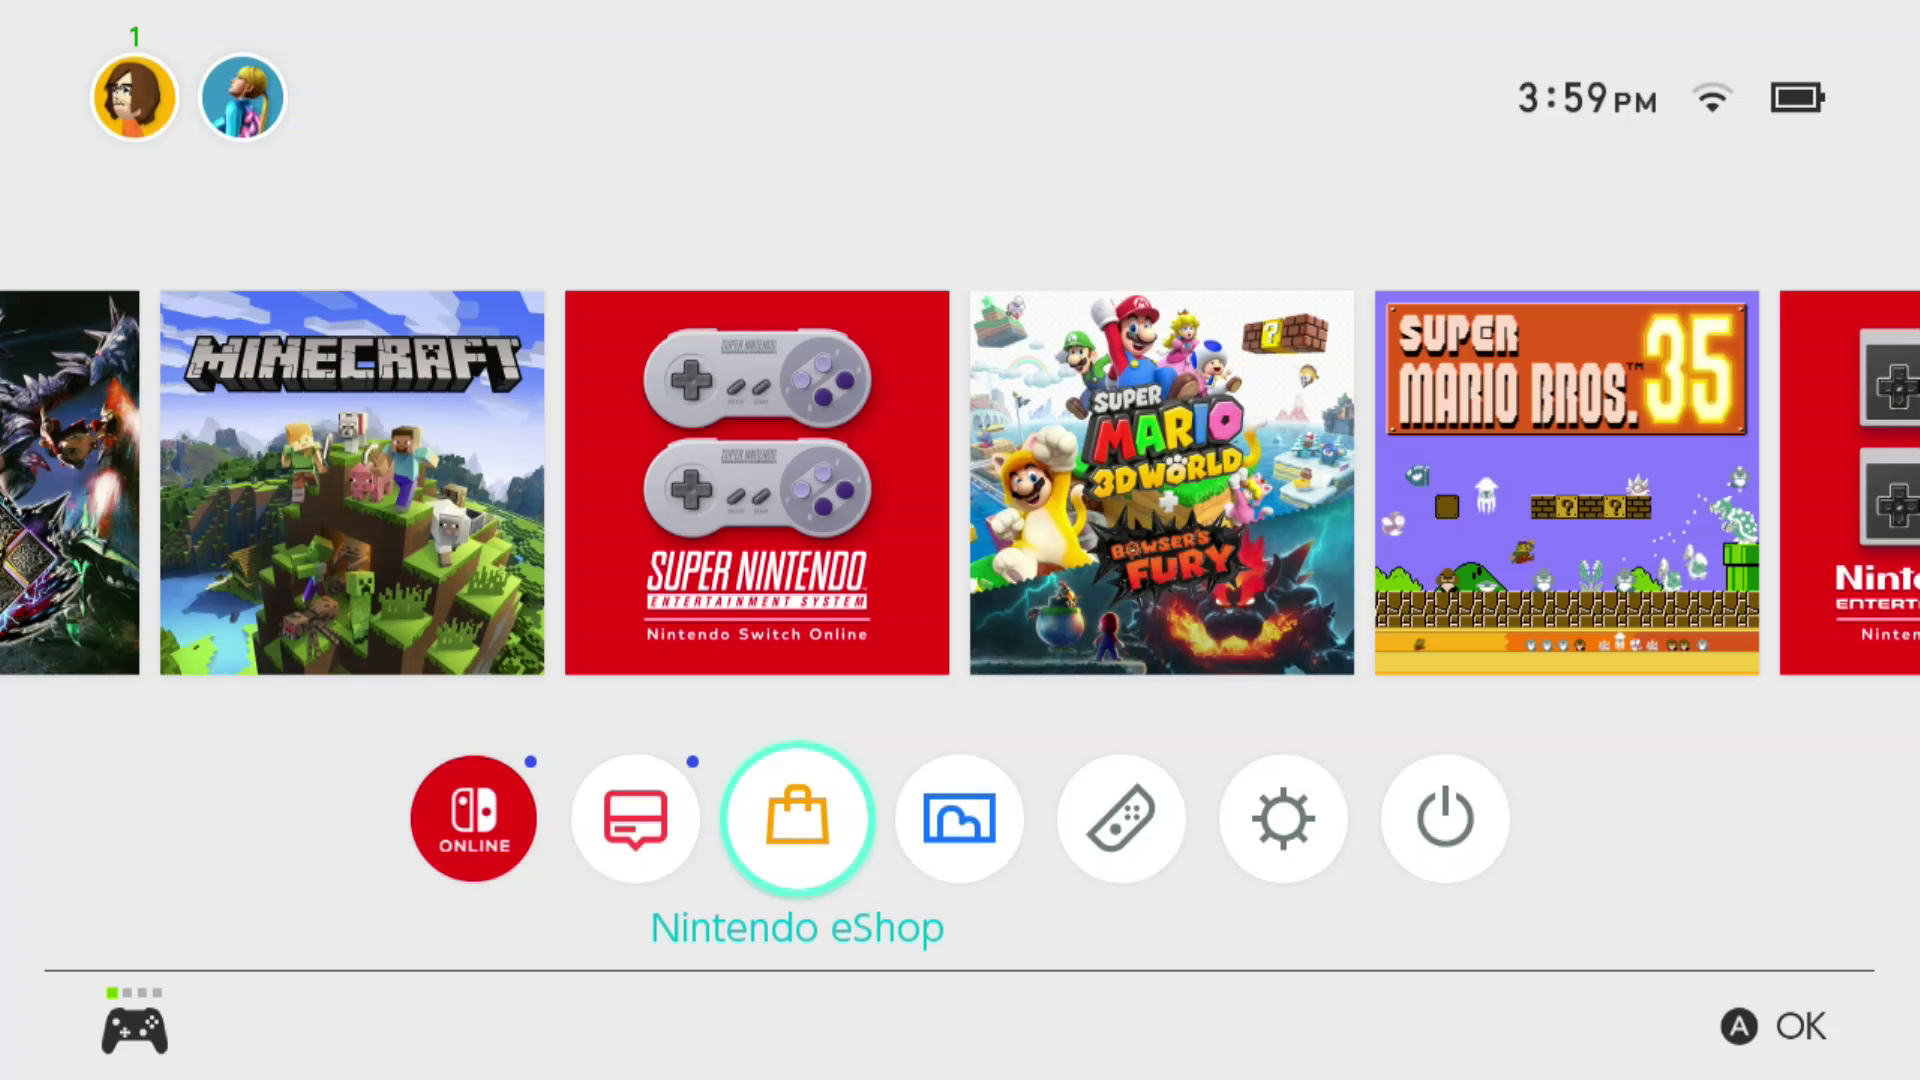 Nintendo eShop highlighted on the Nintendo Switch home screen.